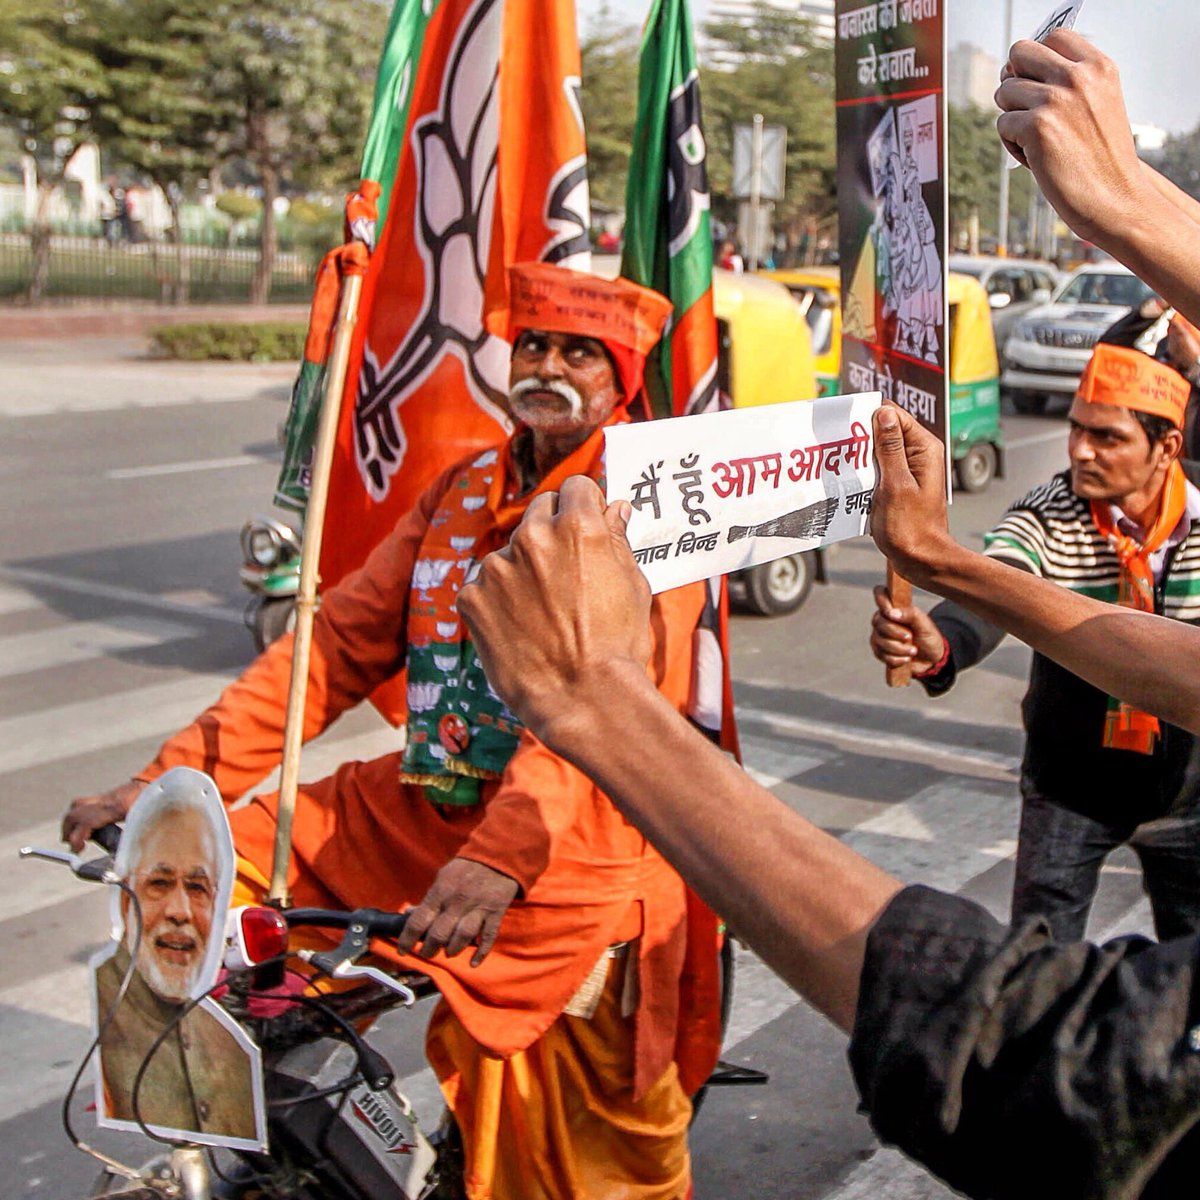 Enthusiastic supporters of #BJP and Aam Aadmi Party campaign for their candidates in Delhi, India. #archives #delhielections #delhi #india #reportagespotlight #bjp #aap @arvindkejriwal #modi #arvindkejriwal #storiesofindia #indiapolitics pic.twitter.com/XoT0bxFQ4Z